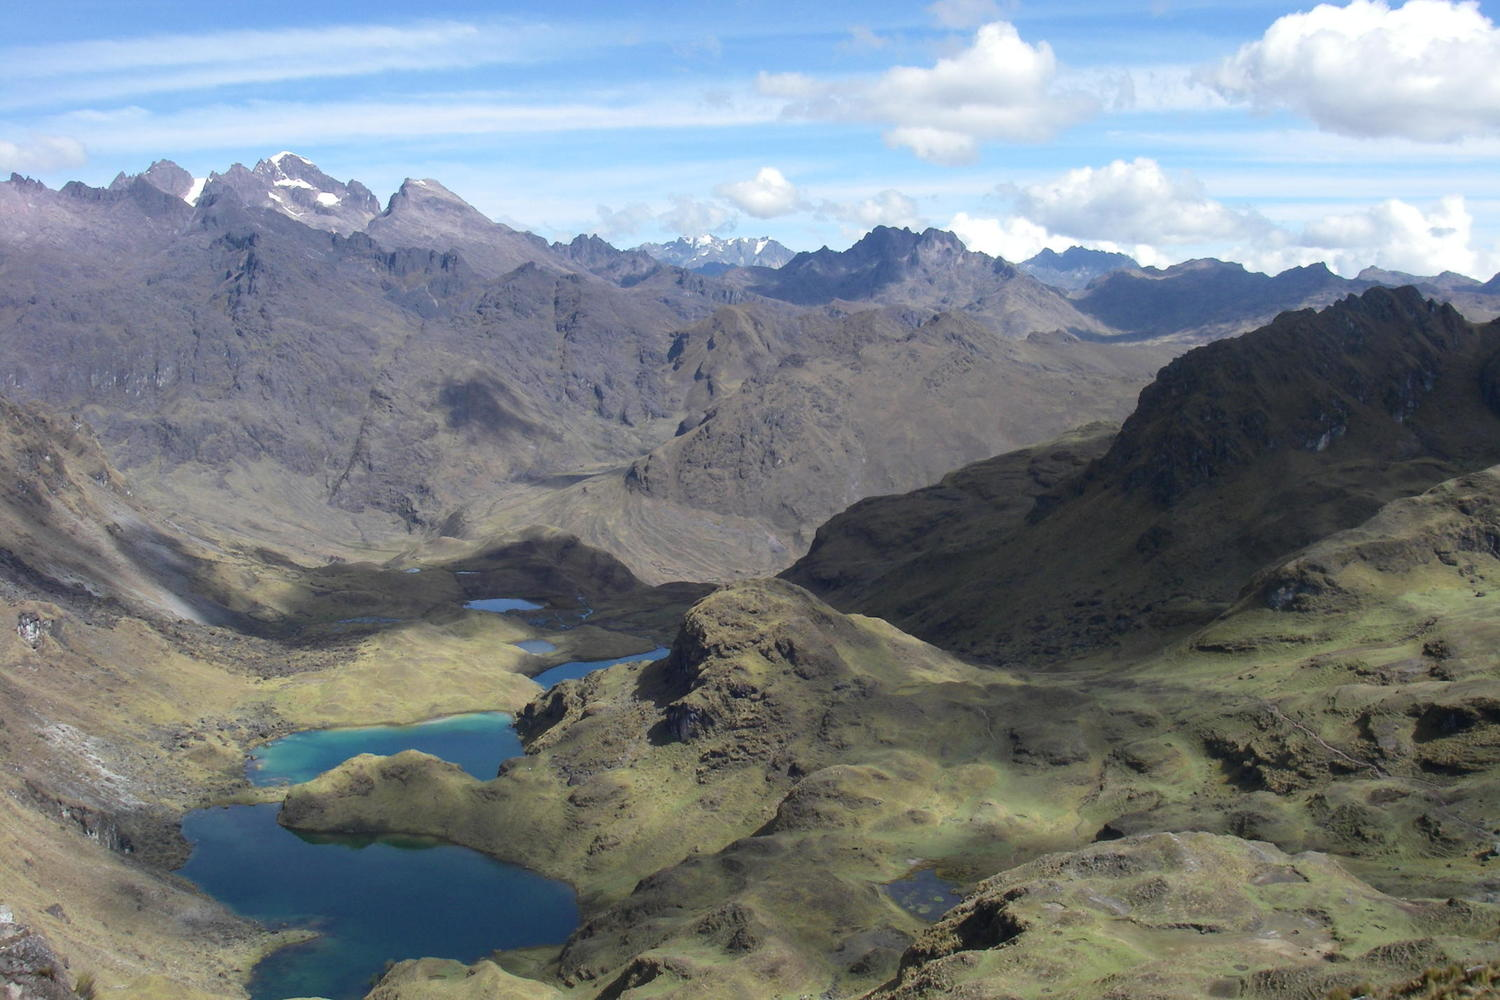 Spectacular views on the Lares trek